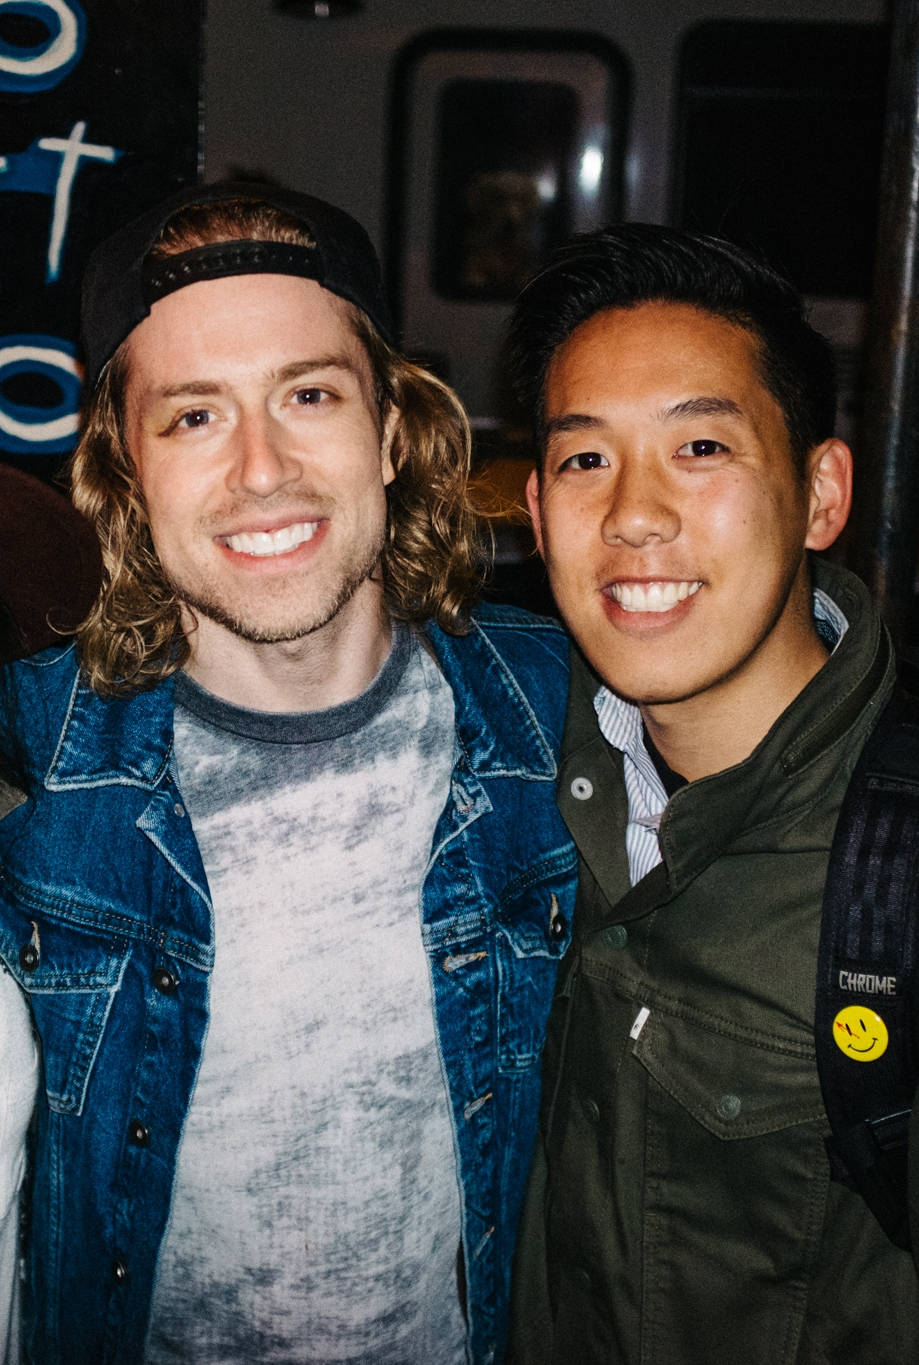 With Bryce Avary